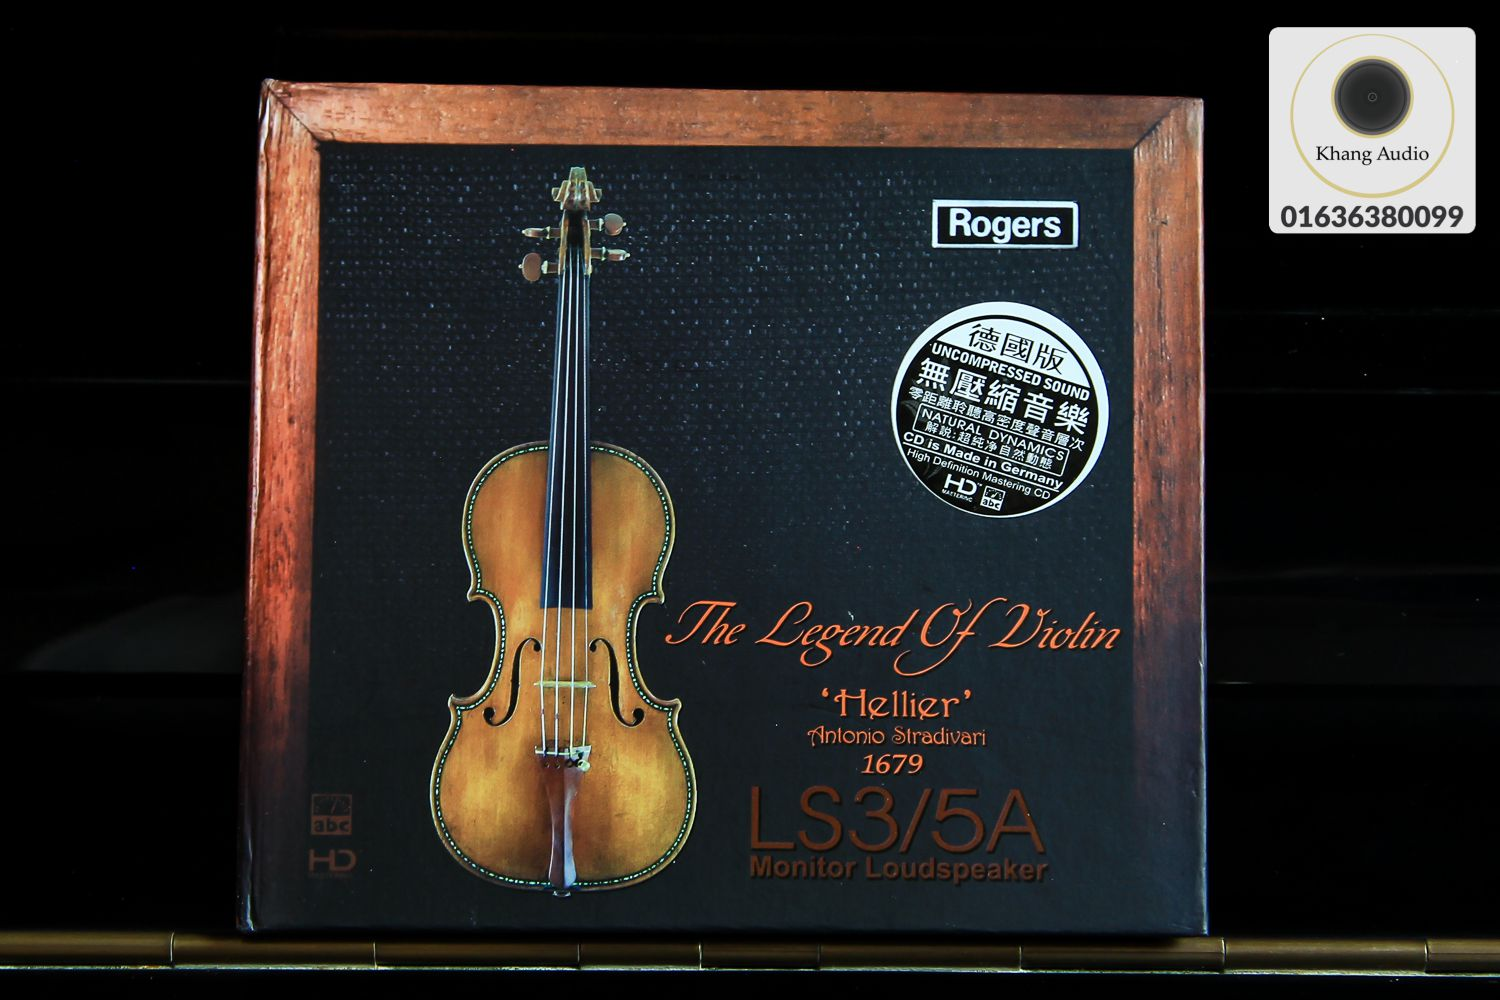 The Legend Of Violin 'Hellier' HQ